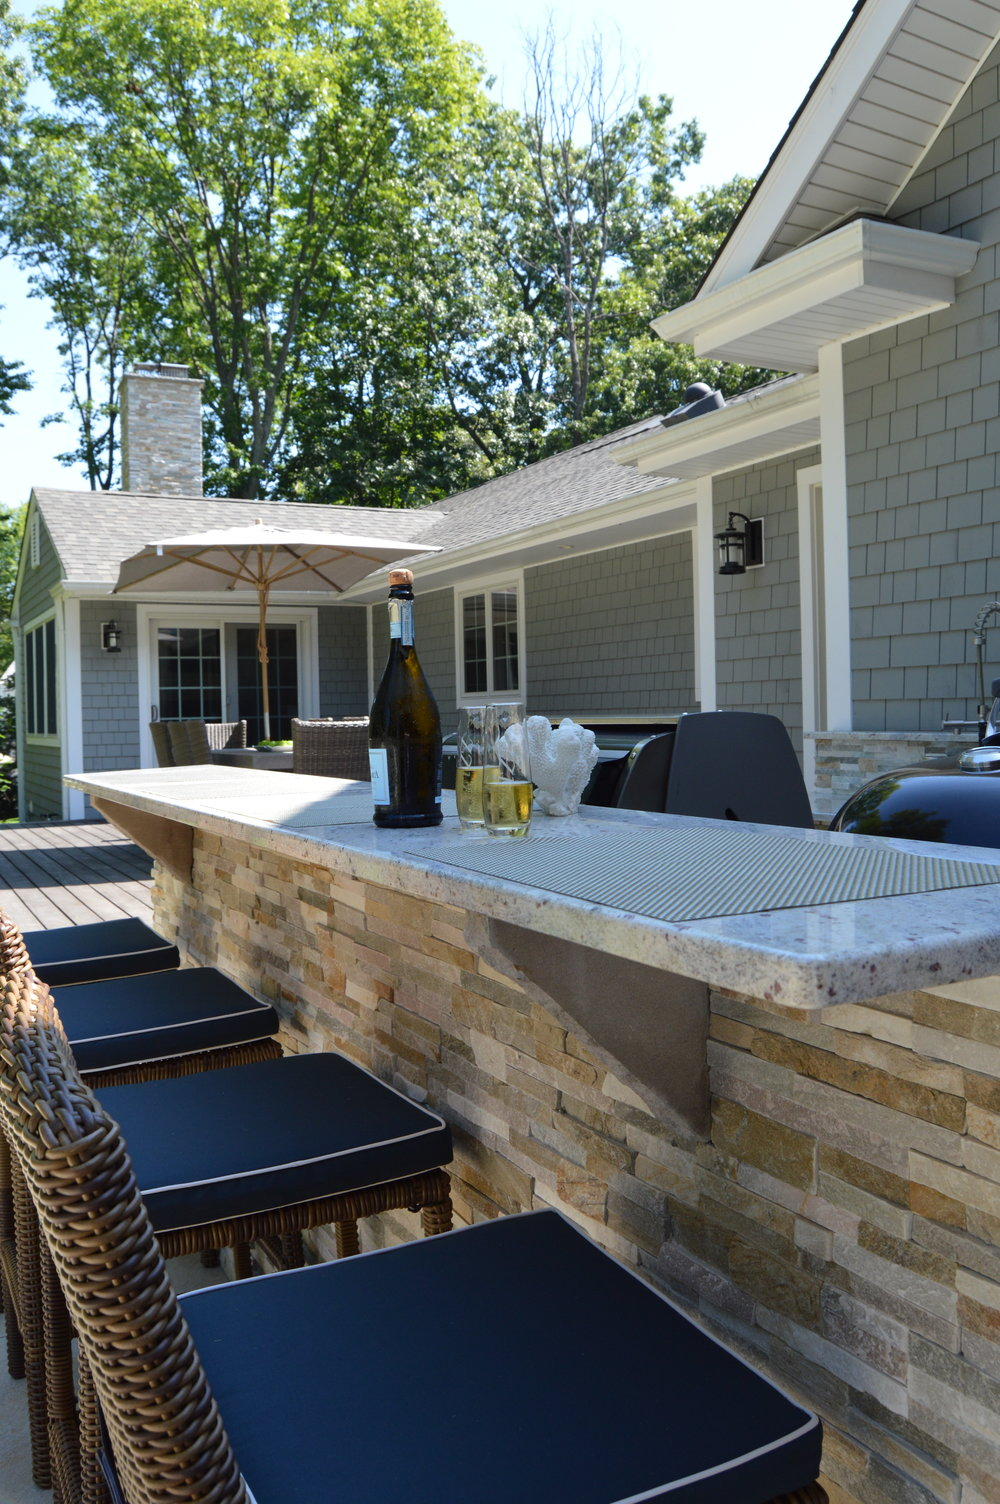 Port Jefferson, NY outdoor kitchen & bar